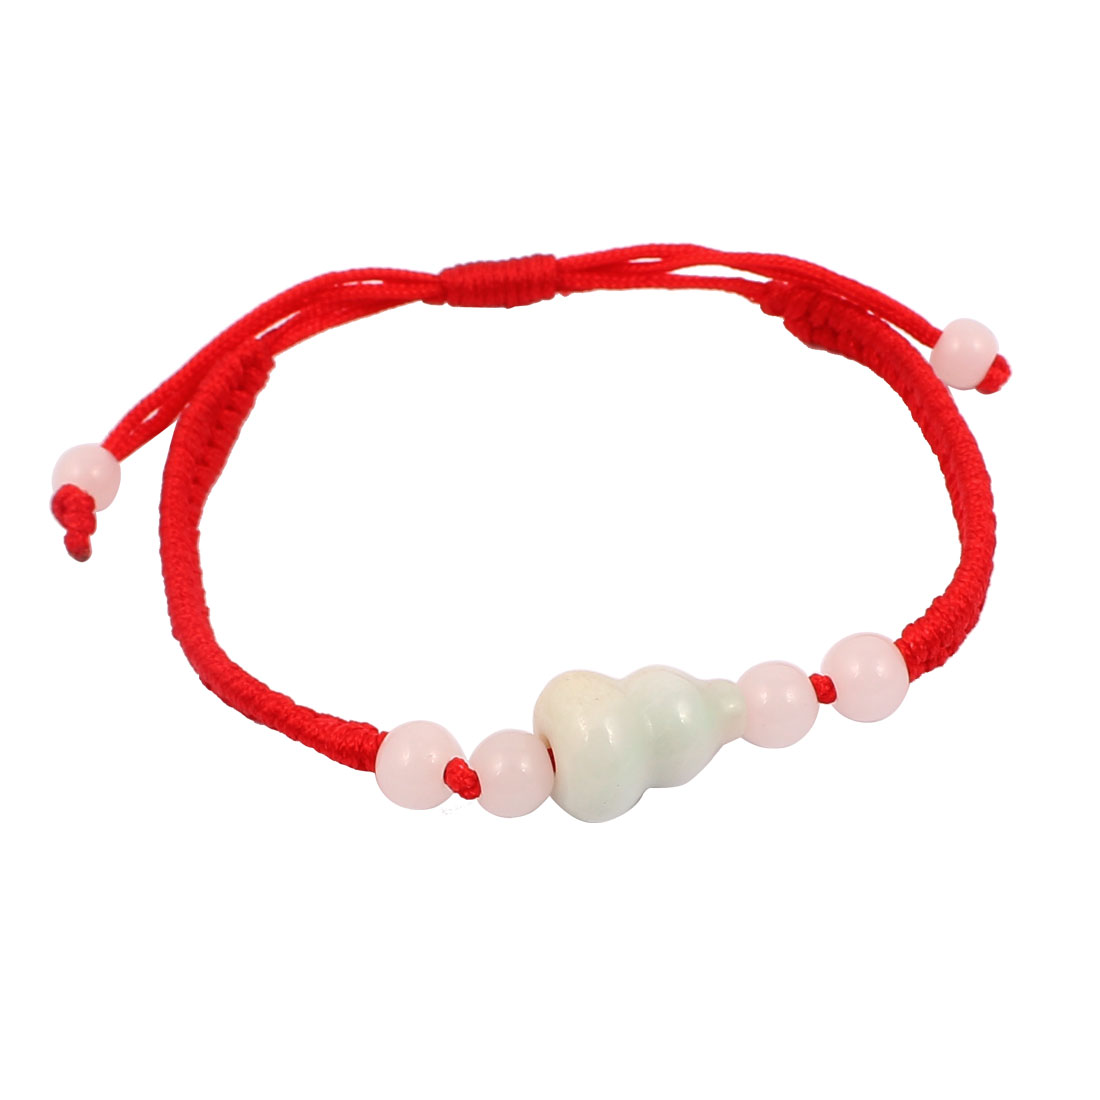 Women Red Handmade Braided Rope Plastic Beads Decor Pull String Wrist Bracelet